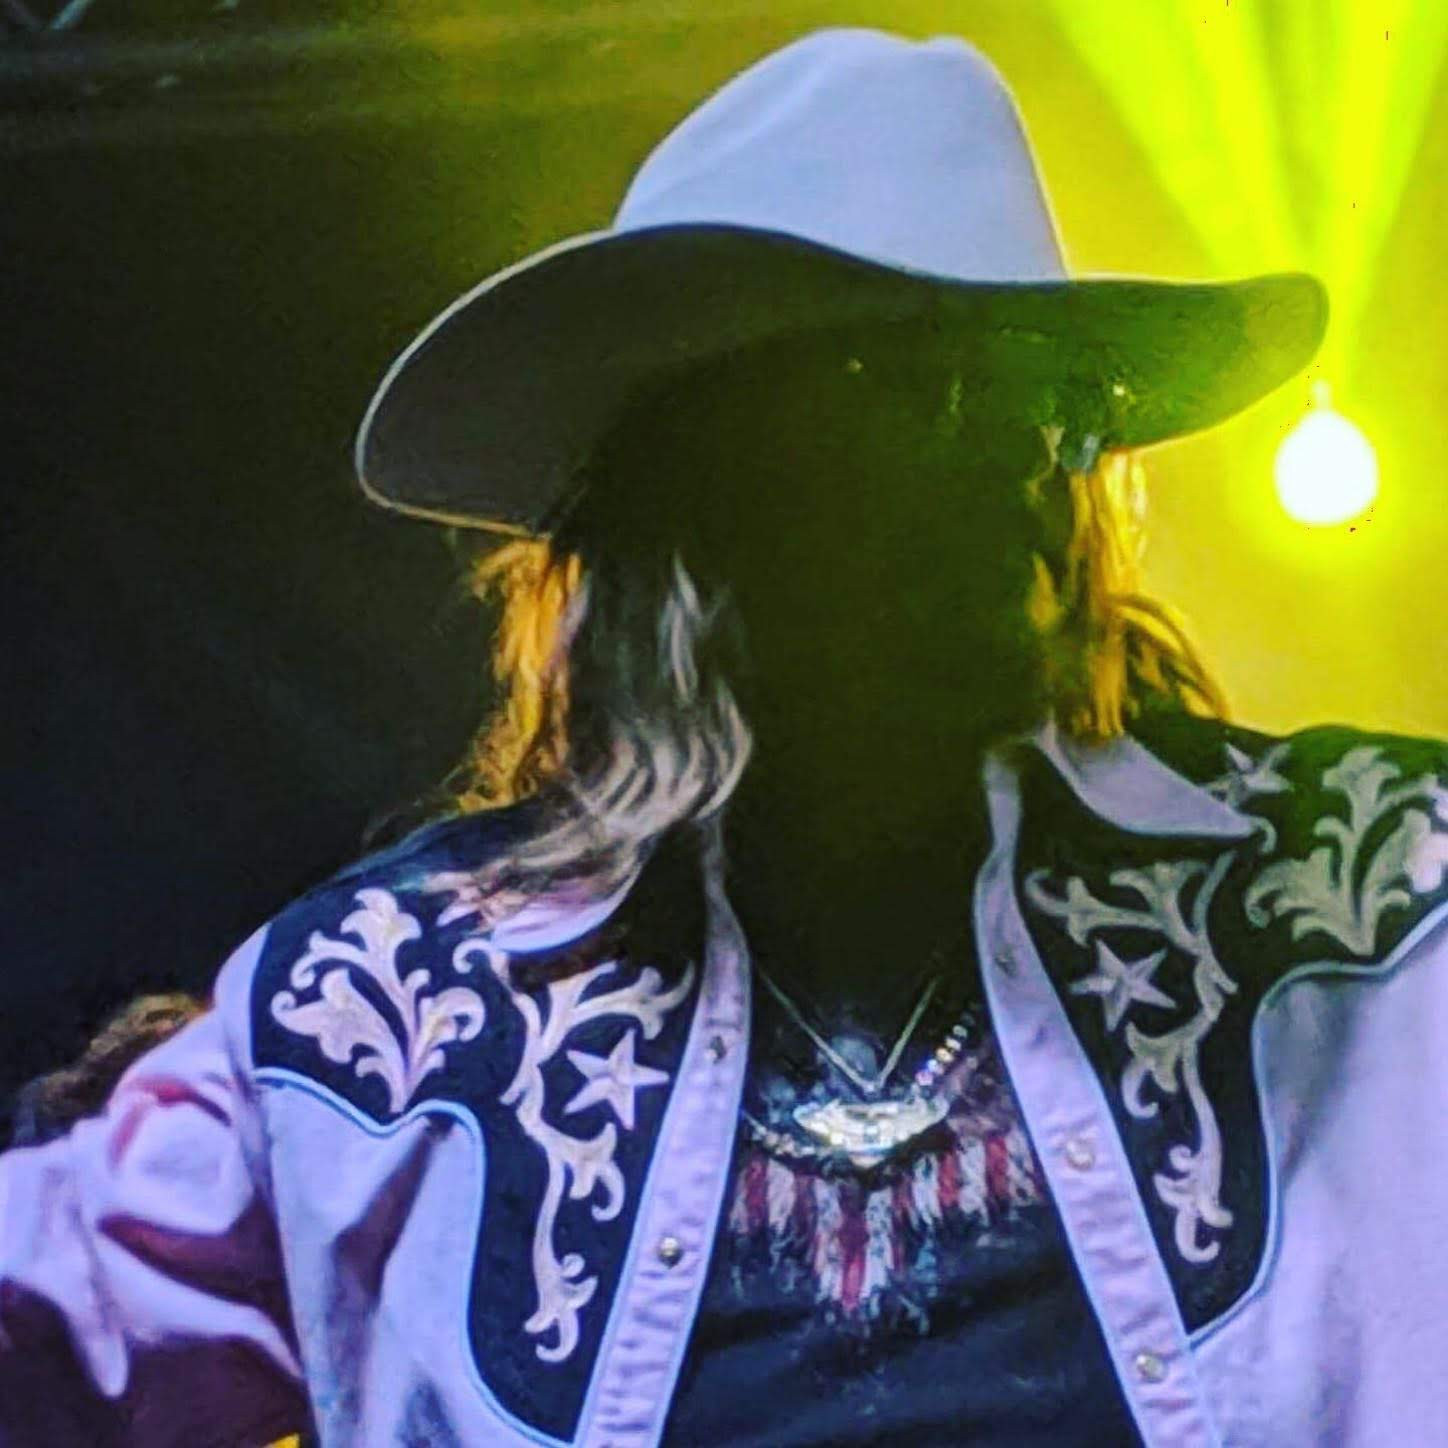 Kid Kentucky Kid Rock Tribute Fan Photos